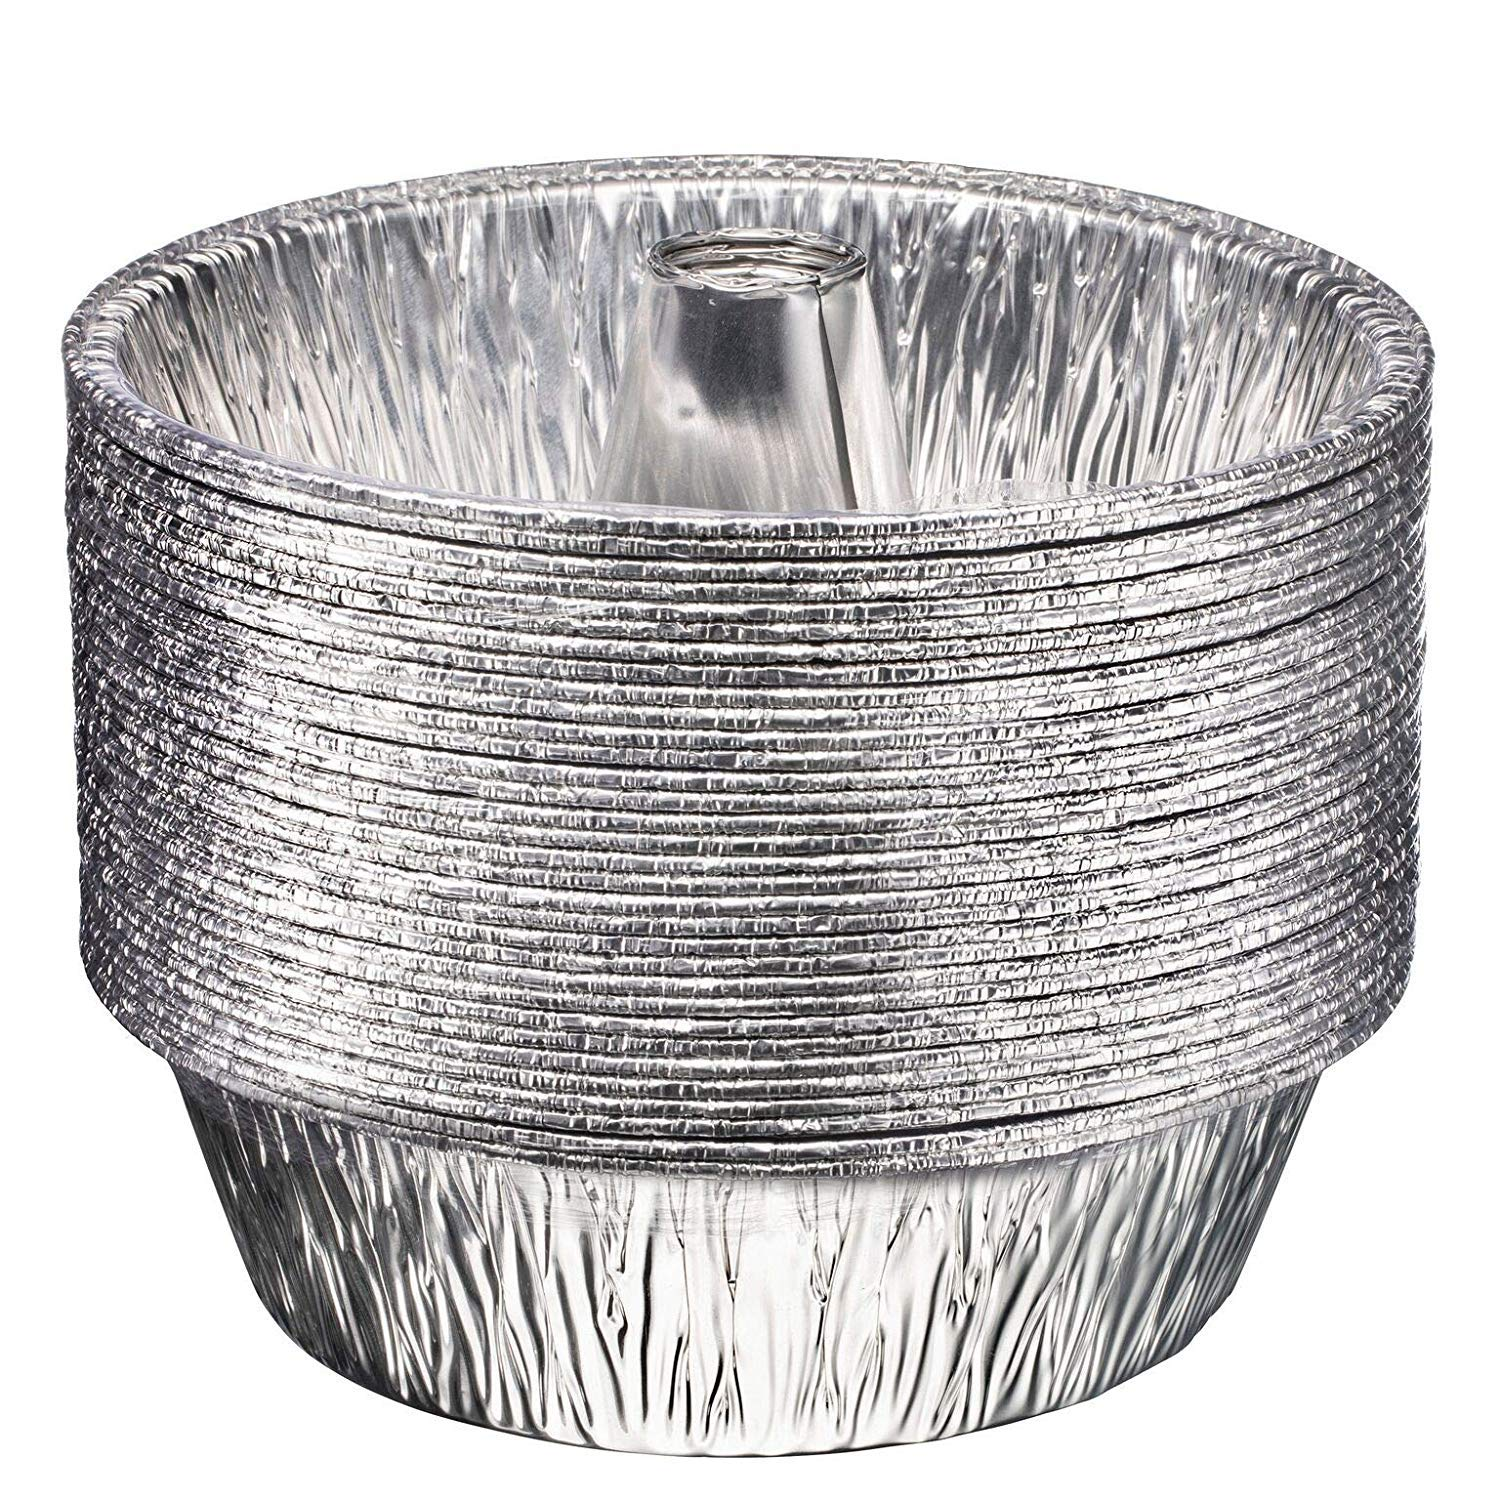 Disposable Round Cake Baking Pans - Aluminum Foil Bundt Tube Tin Great for Baking Decorative Display, Parties (20 Pans, 8-inch Round) by Plastible (Image #3)